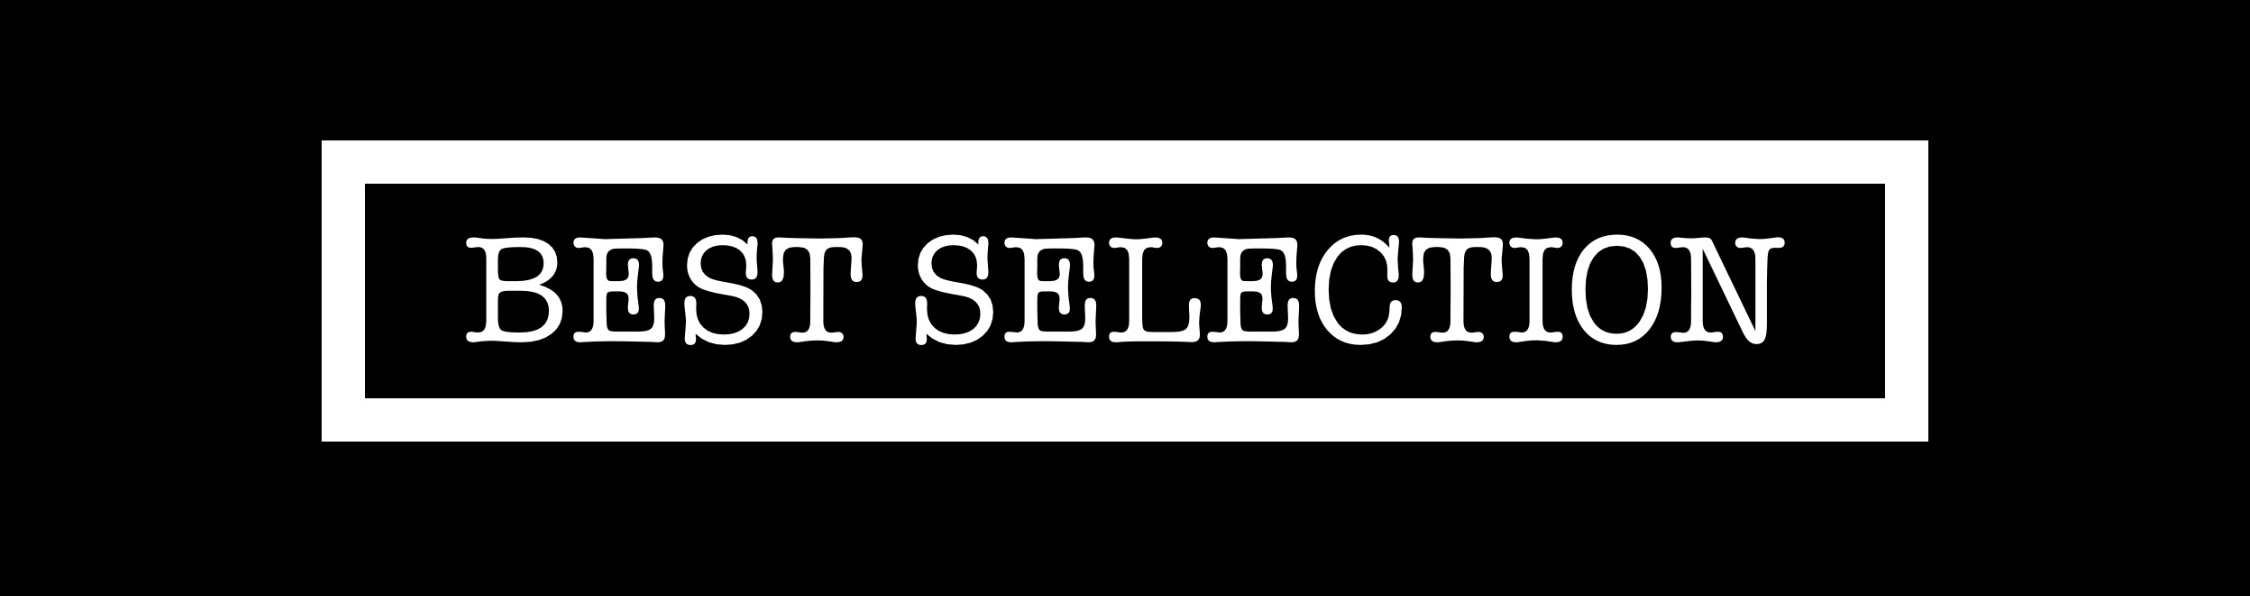 BEST-SELECTION